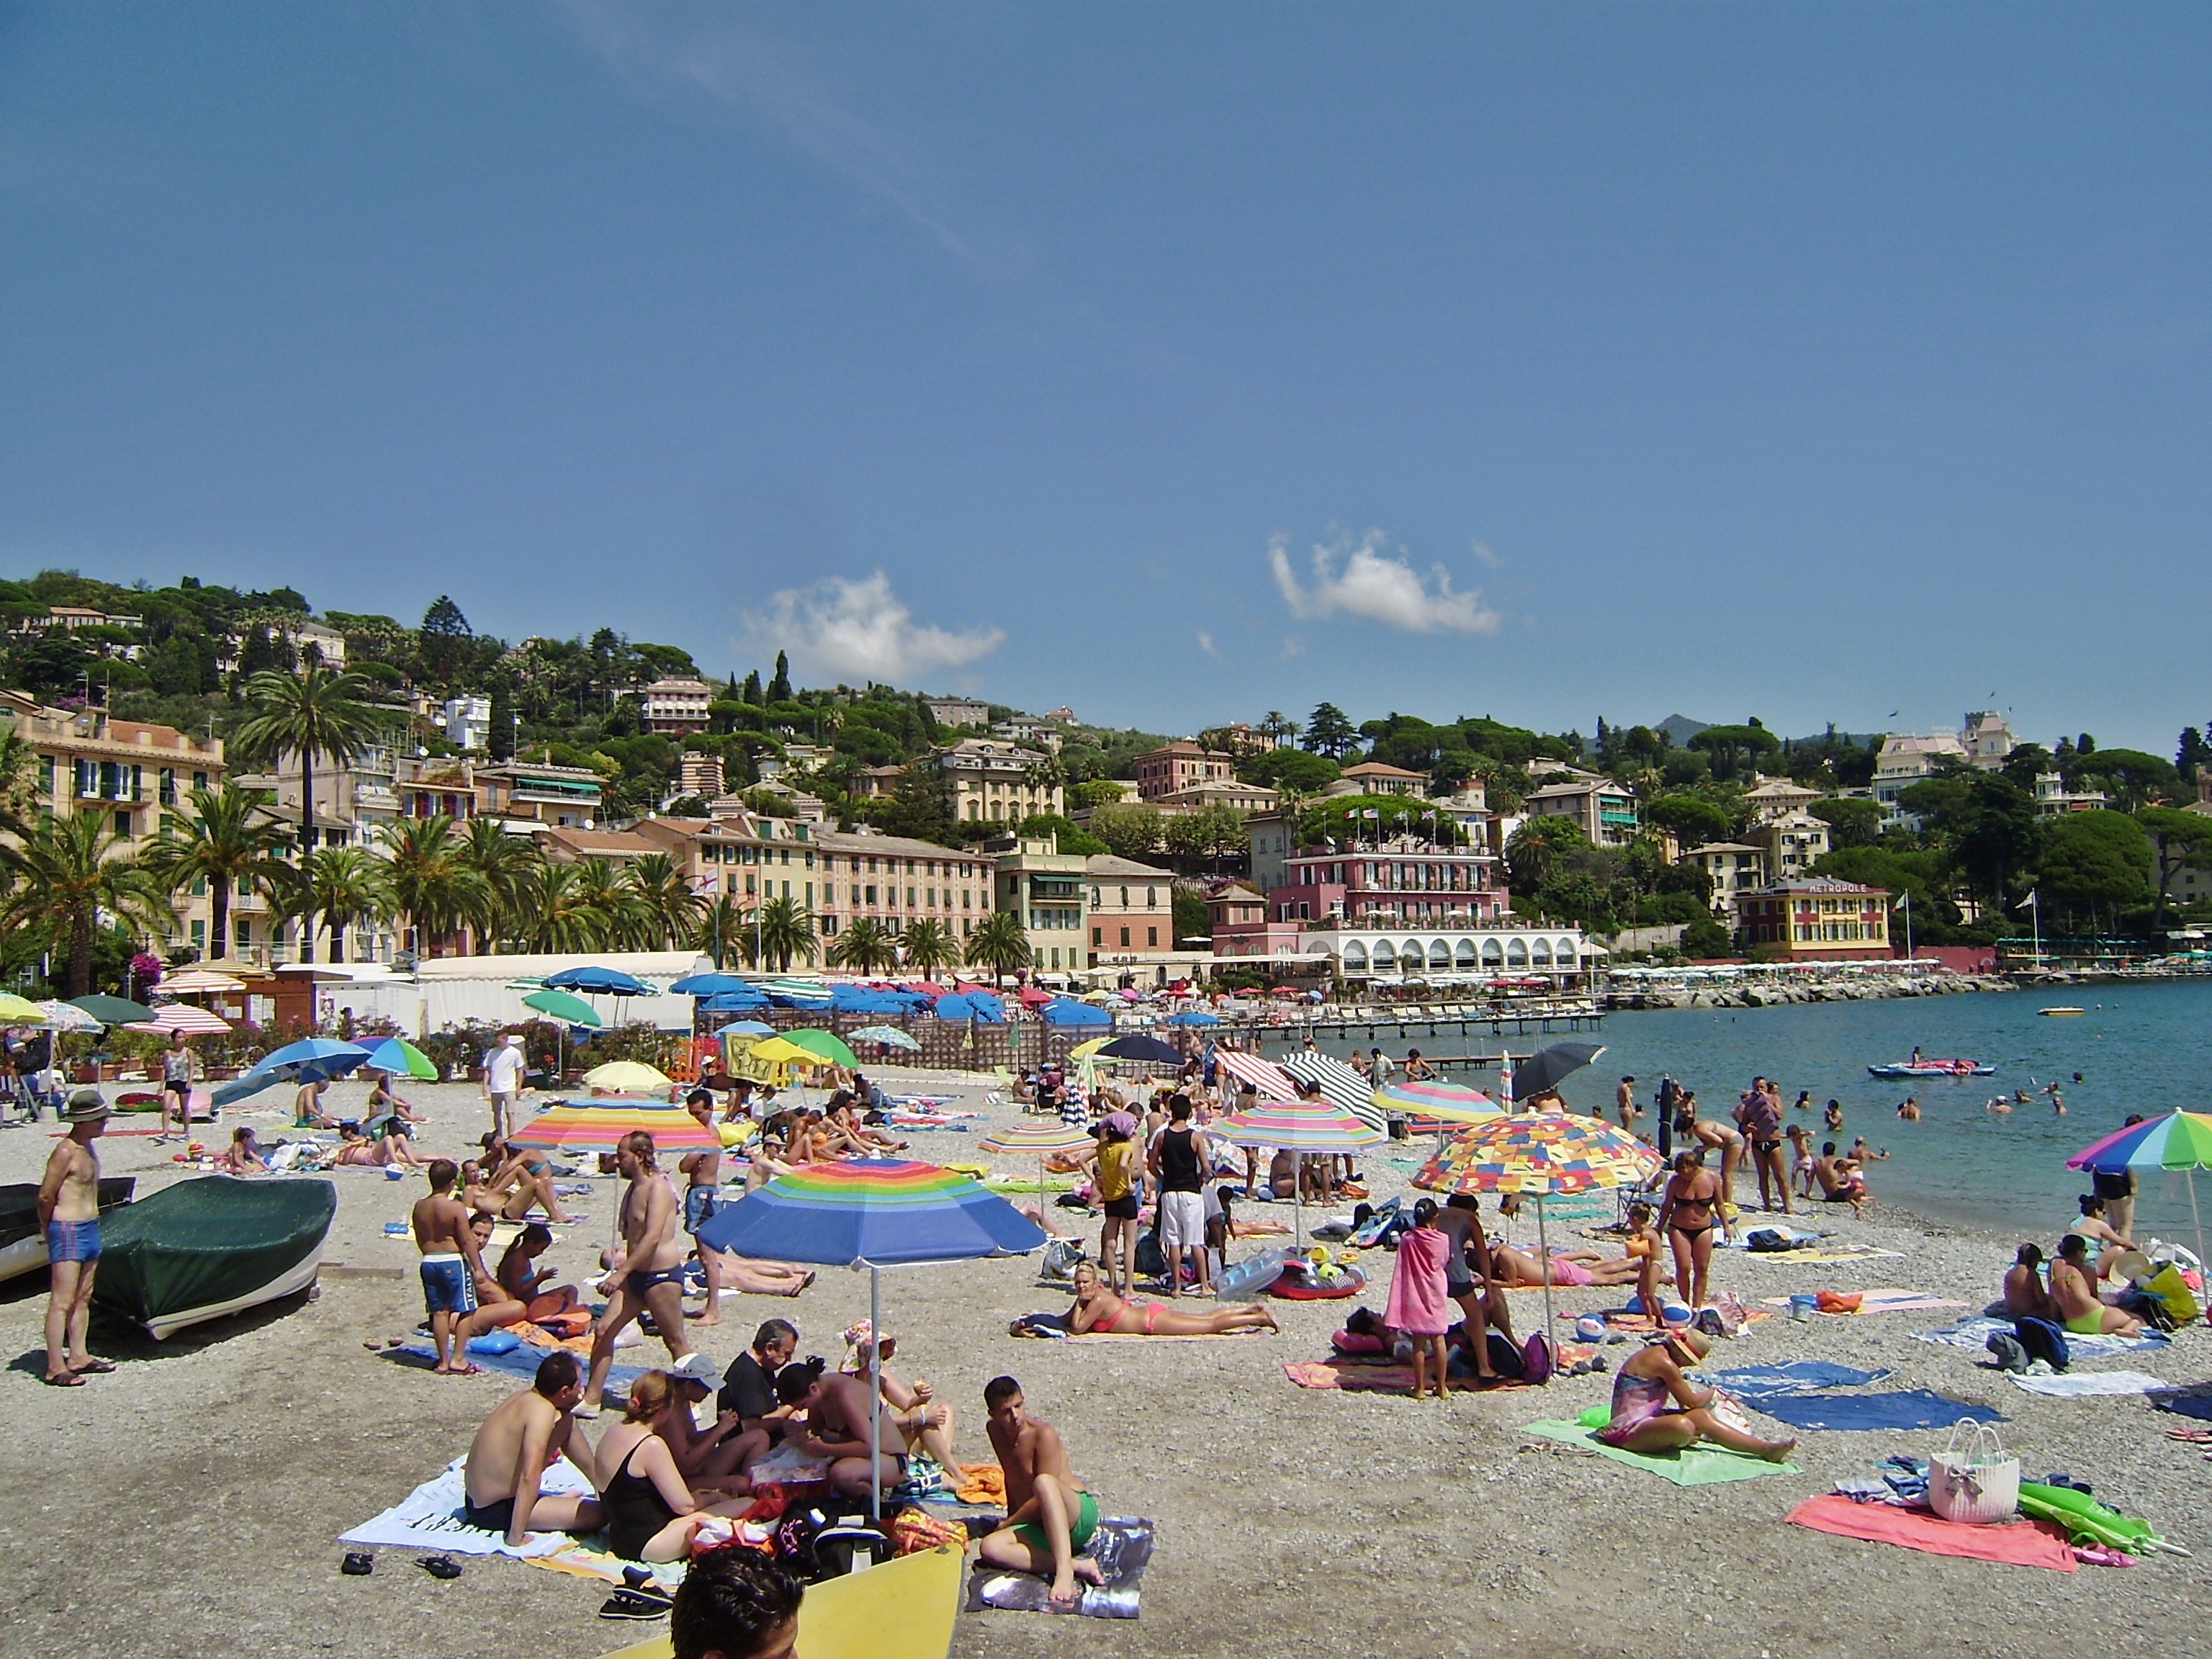 ... in Portofino, and my joy in Santa Margherita Ligure | Diana's Escapes